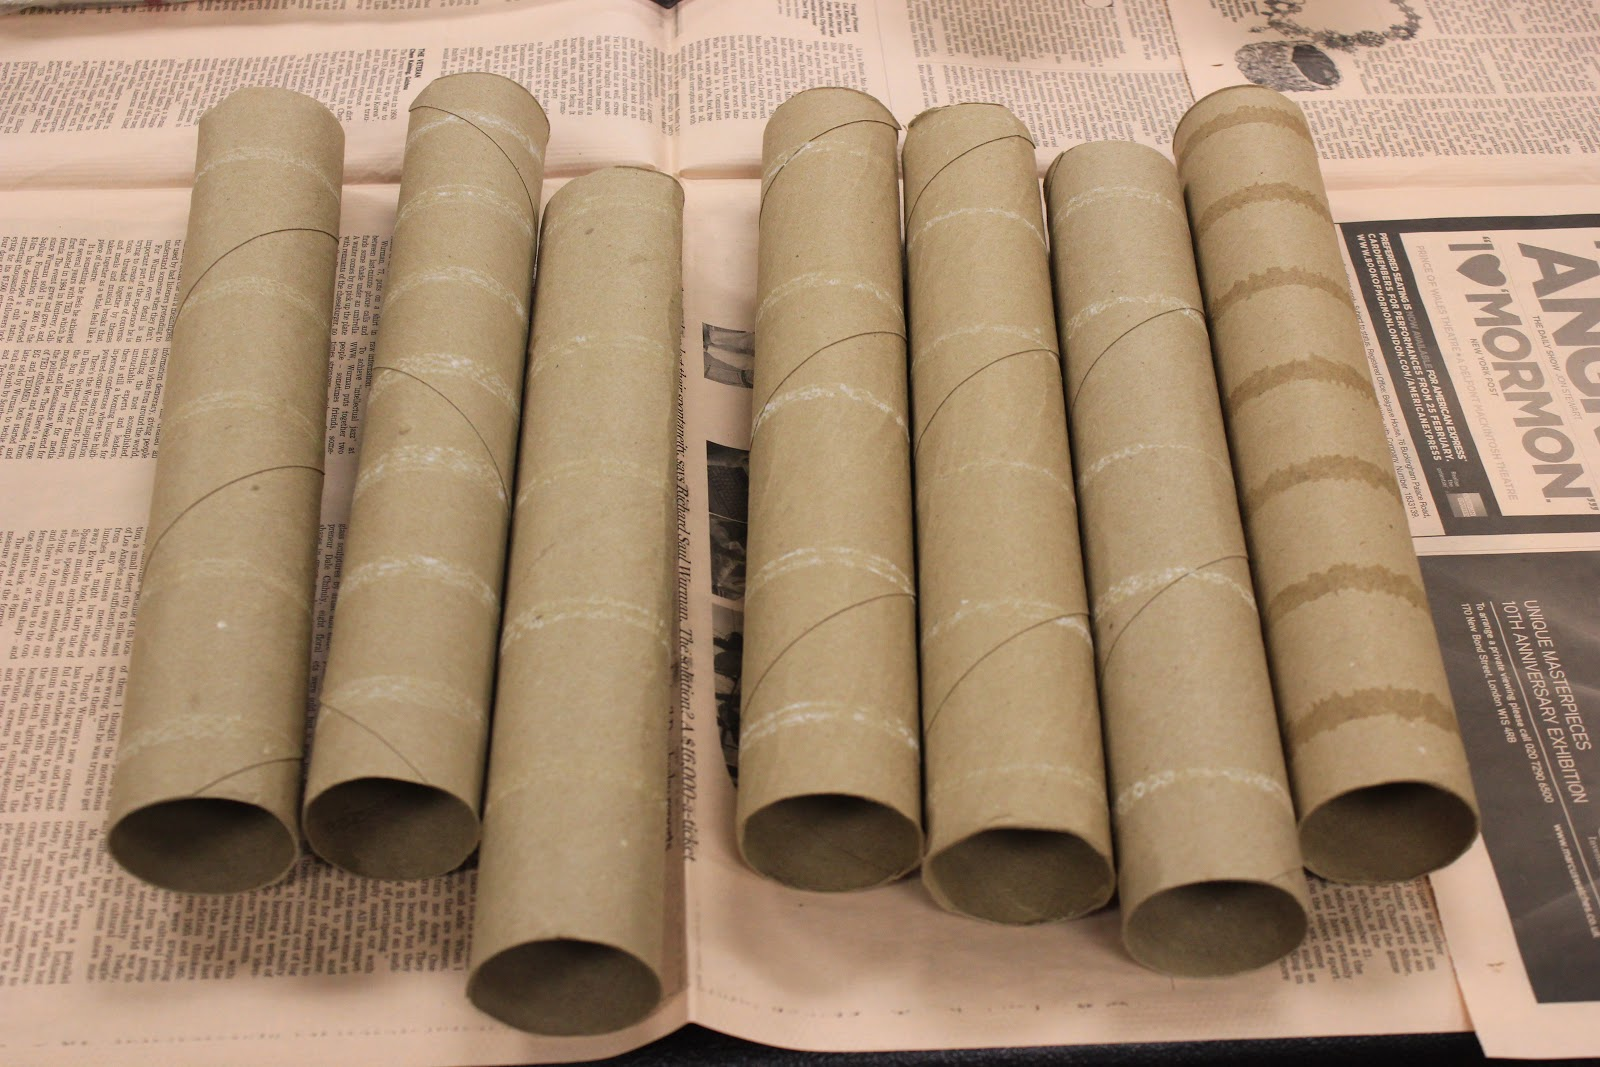 teen blog frvpld transform paper towel rolls into